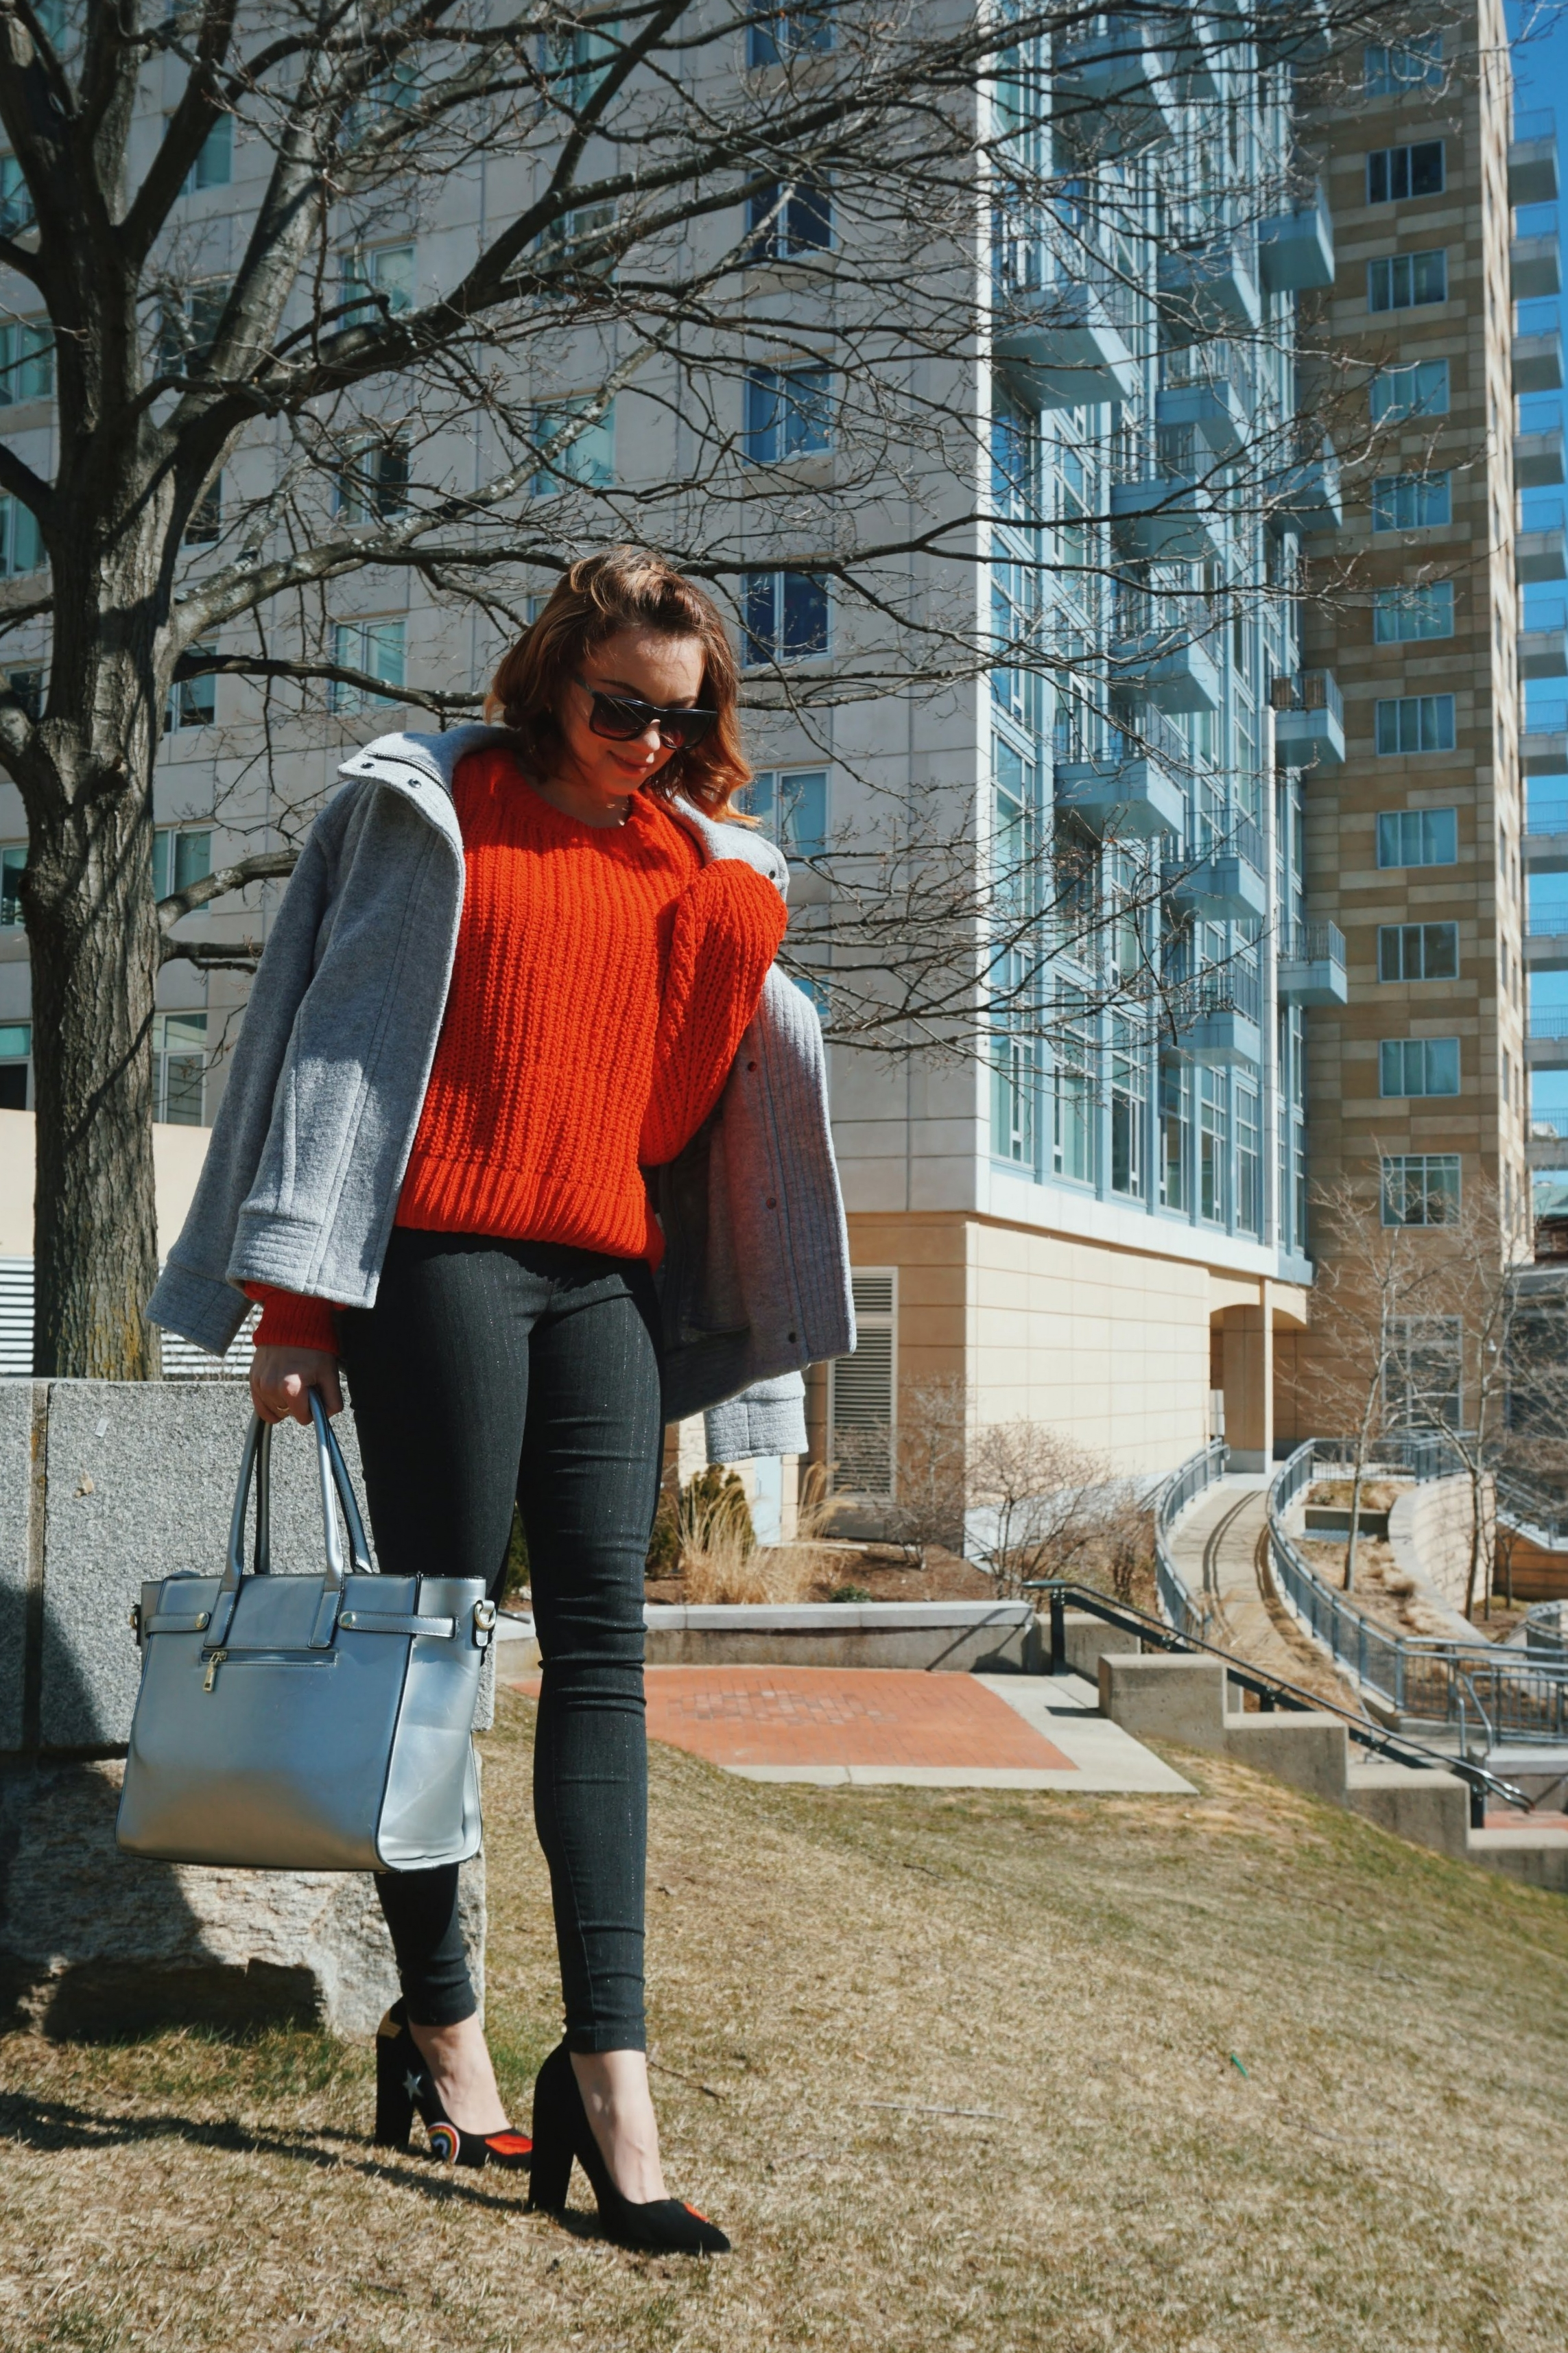 Lifestyle blogger posing on a grass, wearing a chic outfit: skinny gray pants, red sweater, gray jacket, black heels with rainbows, and silver bag.